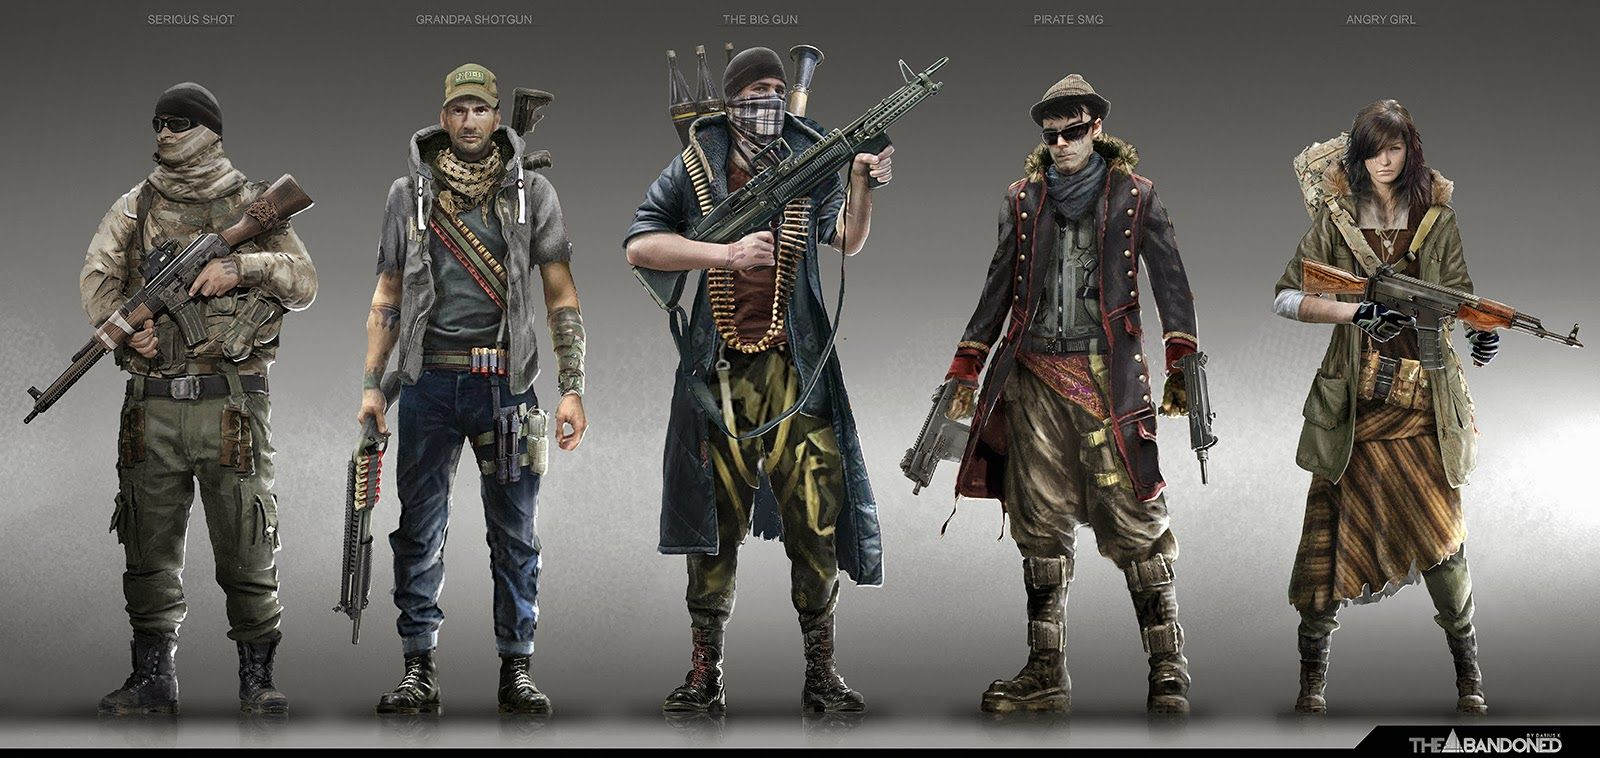 Post-apocalyptic character designs